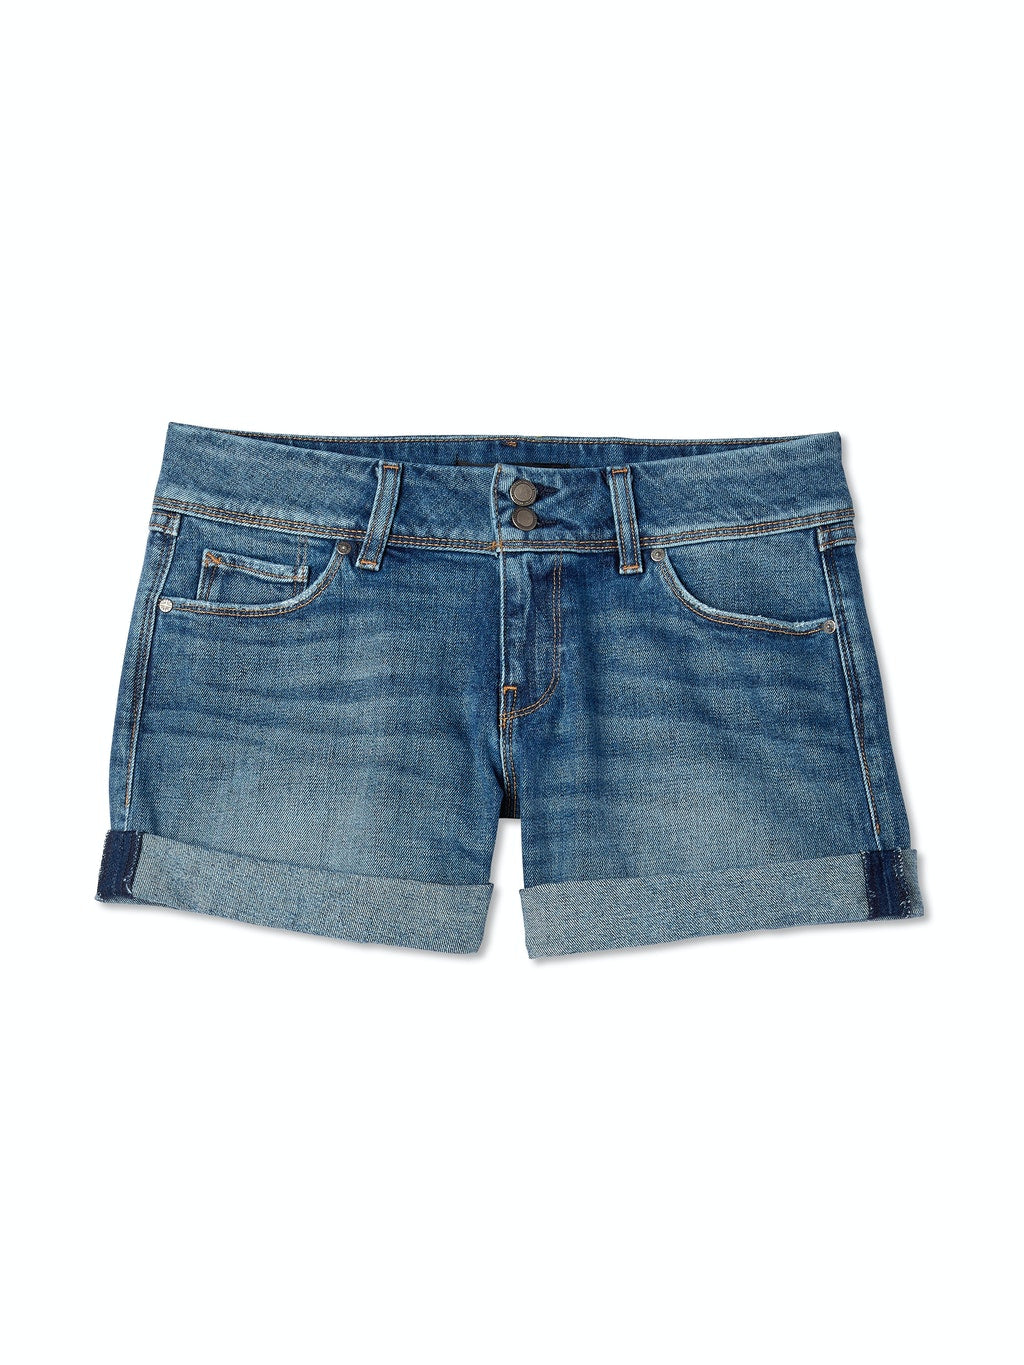 Croxley Mid Thigh Jean Shorts